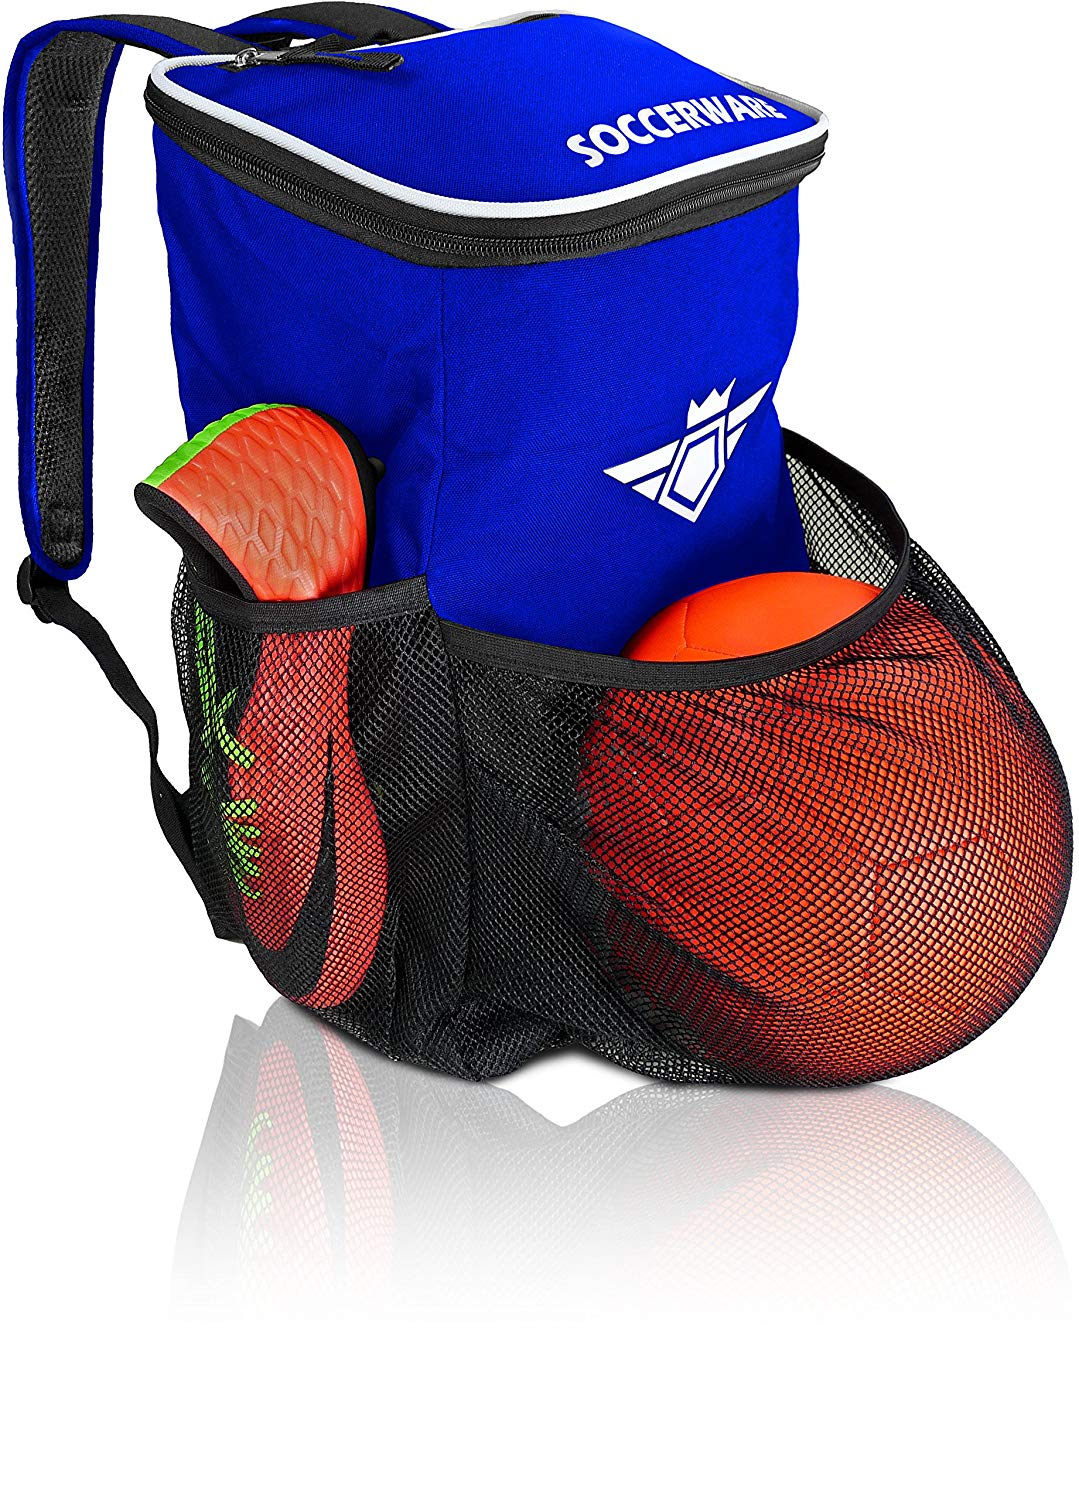 Get Quotations Soccer Backpack With Ball Holder Compartment For Kids Youth Boys S Bag Fits